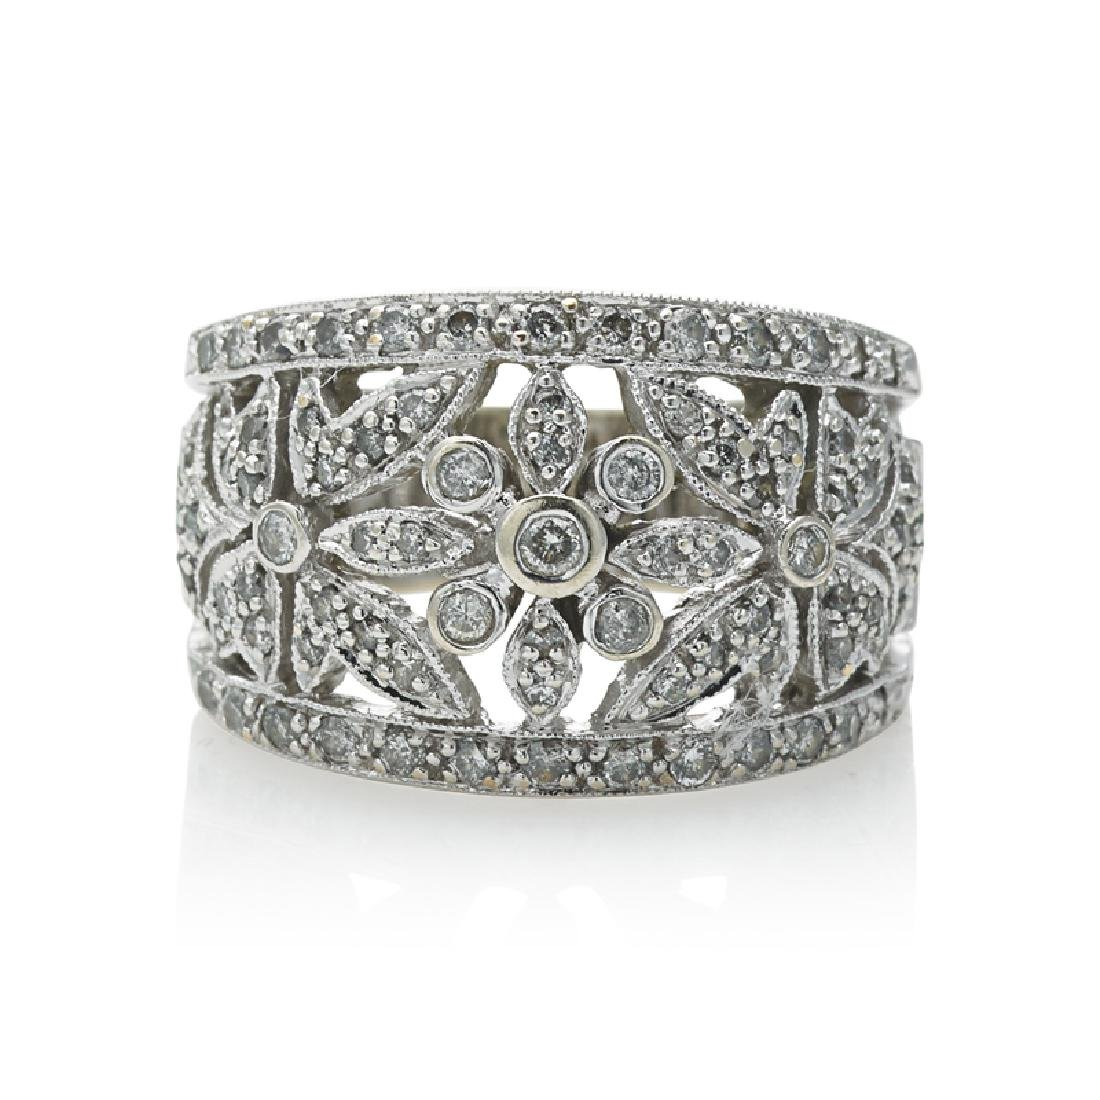 DIAMOND & WHITE GOLD FLORAL BAND RING